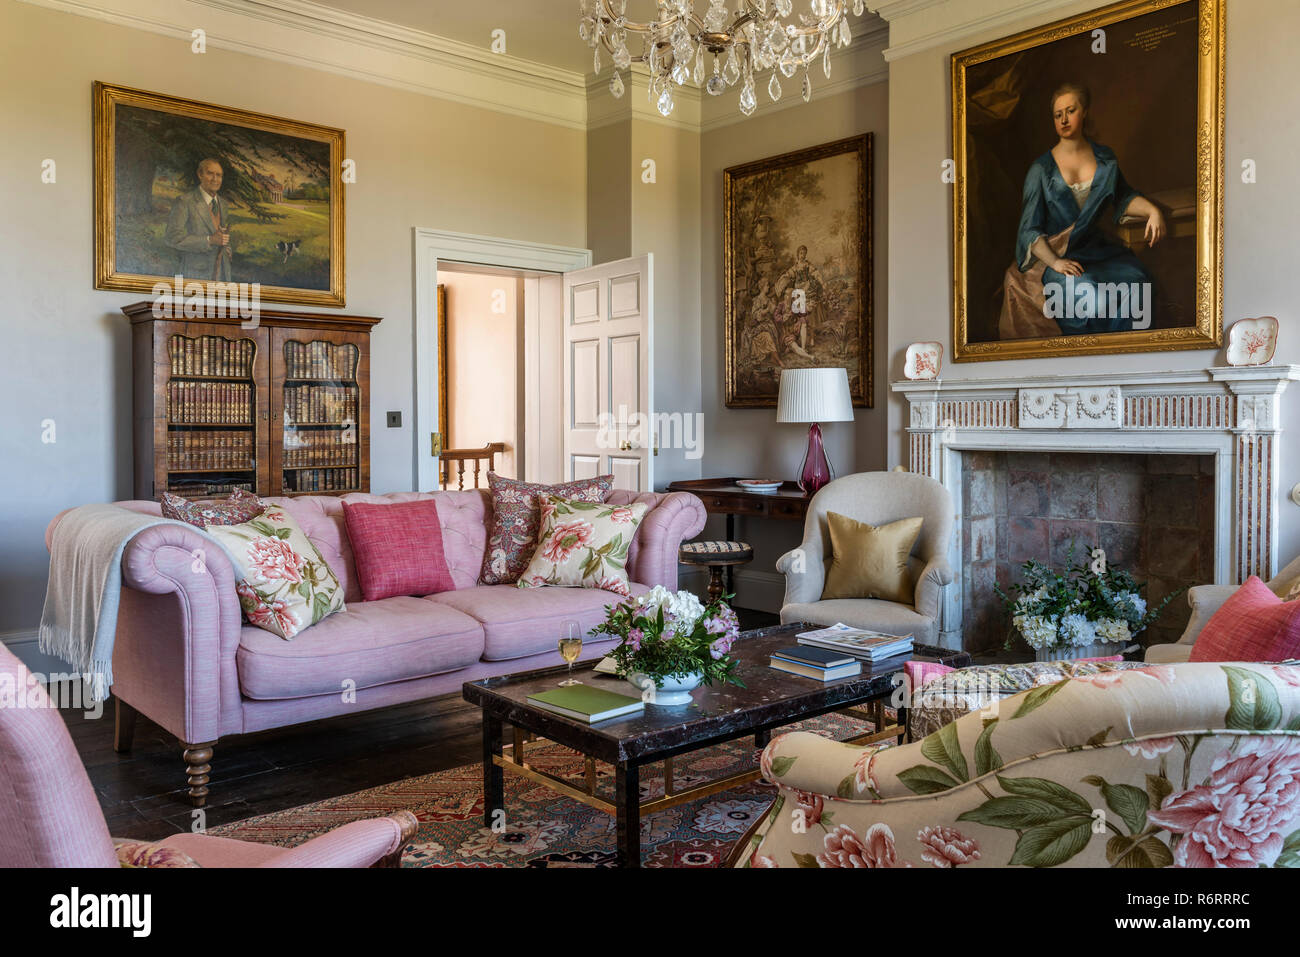 18th century Goodnestone estate Portrait of Fanny Fowler above fireplace in drawing room with pink sofa in 18th century Goodnestone mansion - Stock Image